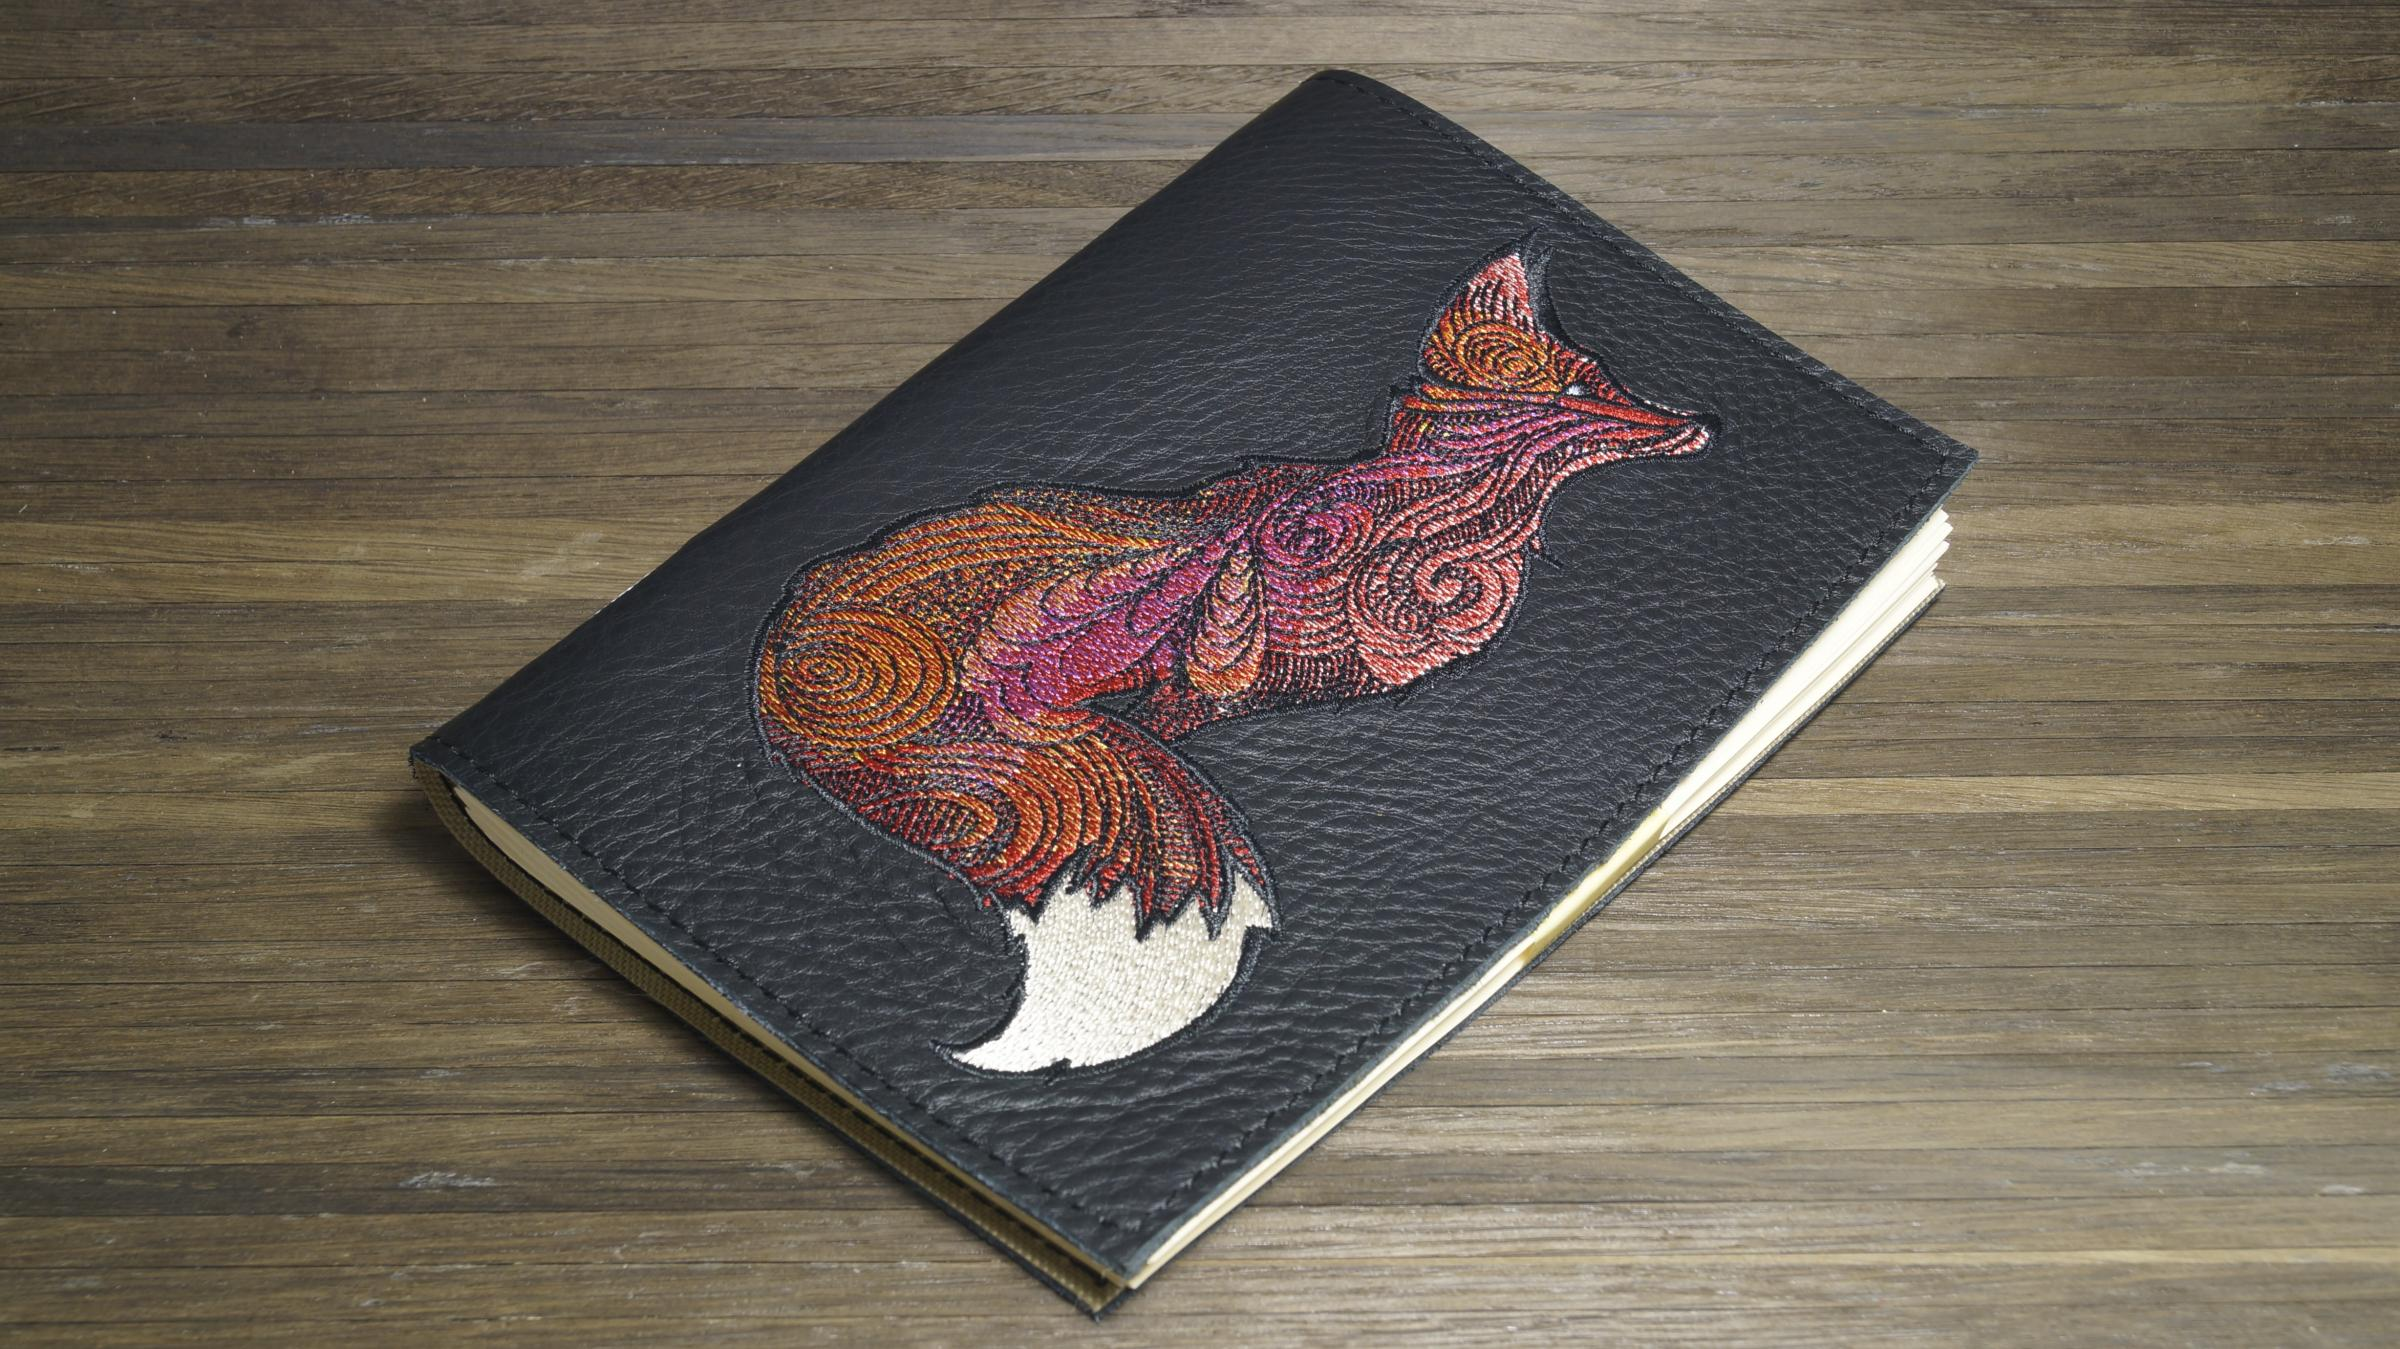 Embroidered cover with Mosaic fox embroidery design